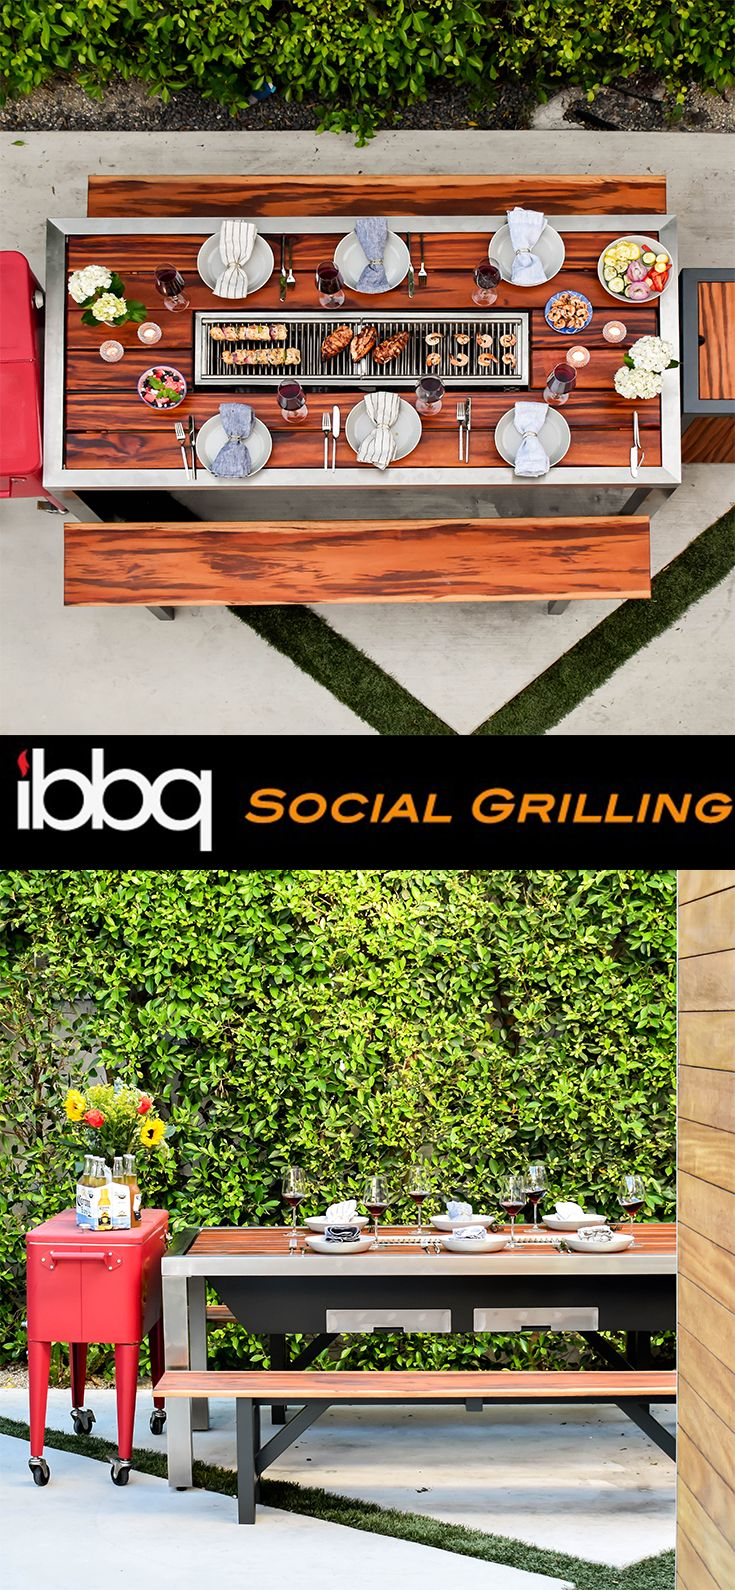 Cute Table Setting For Your Outside Barbecue Ibbq Socialgrilling Outdoor Bbq Grill Modern Outdoor Dining Table Outdoor Bbq